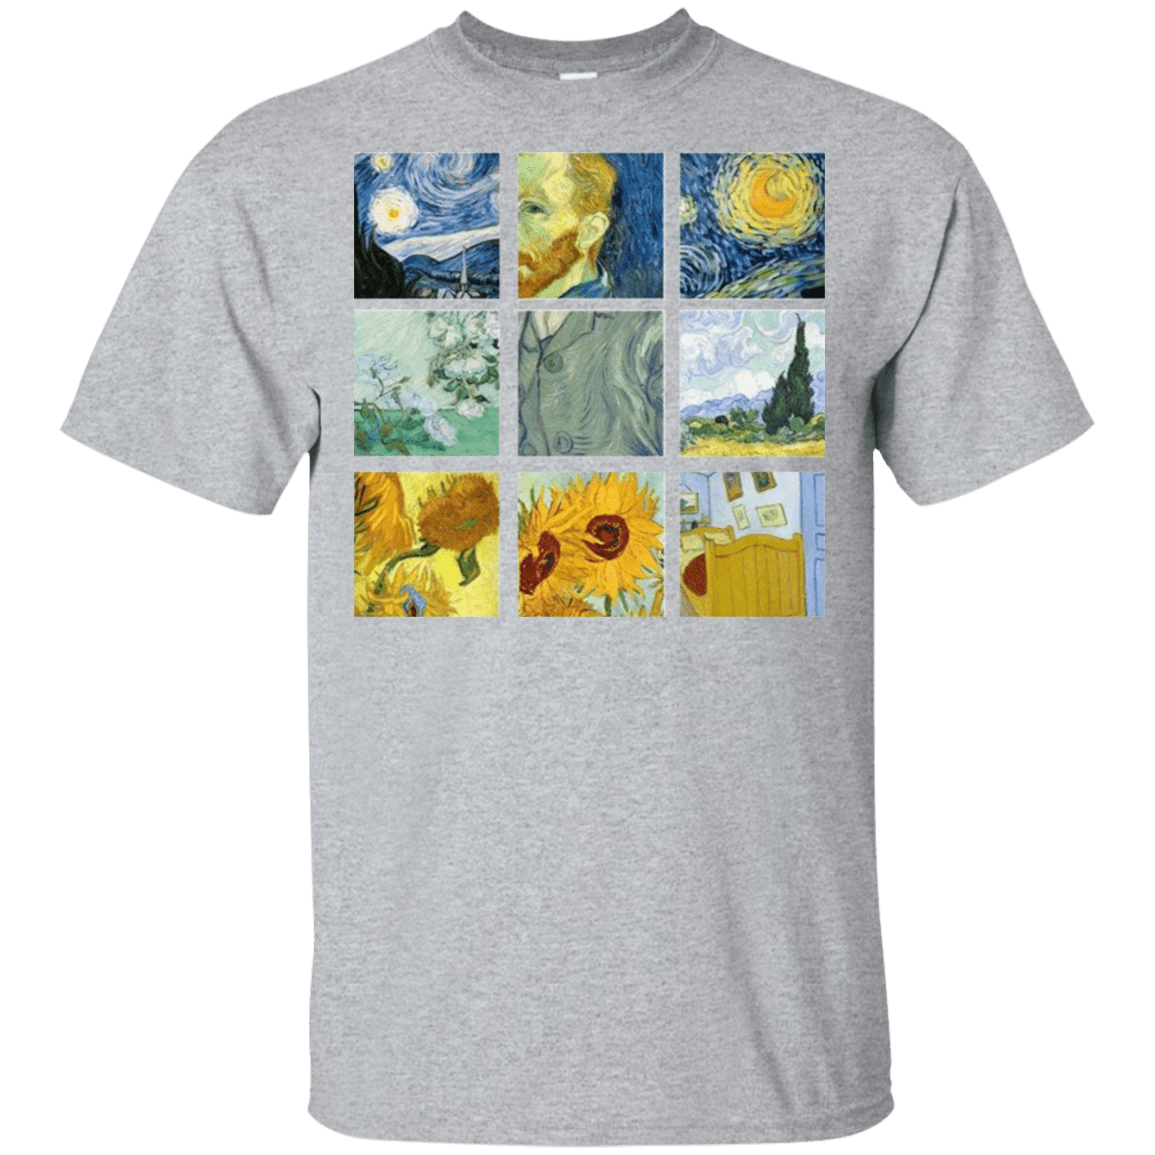 Vincent Van Gogh Collage 22-115-73056961-254 - Tee Ript